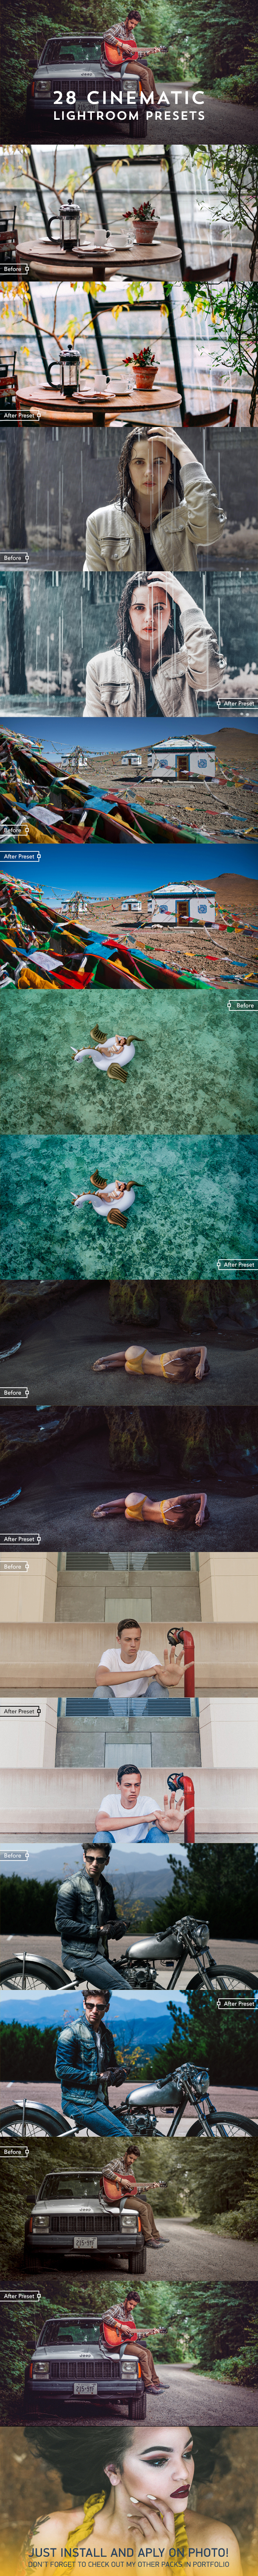 28 Cinematic Film Look Lightroom Presets - Cinematic Lightroom Presets